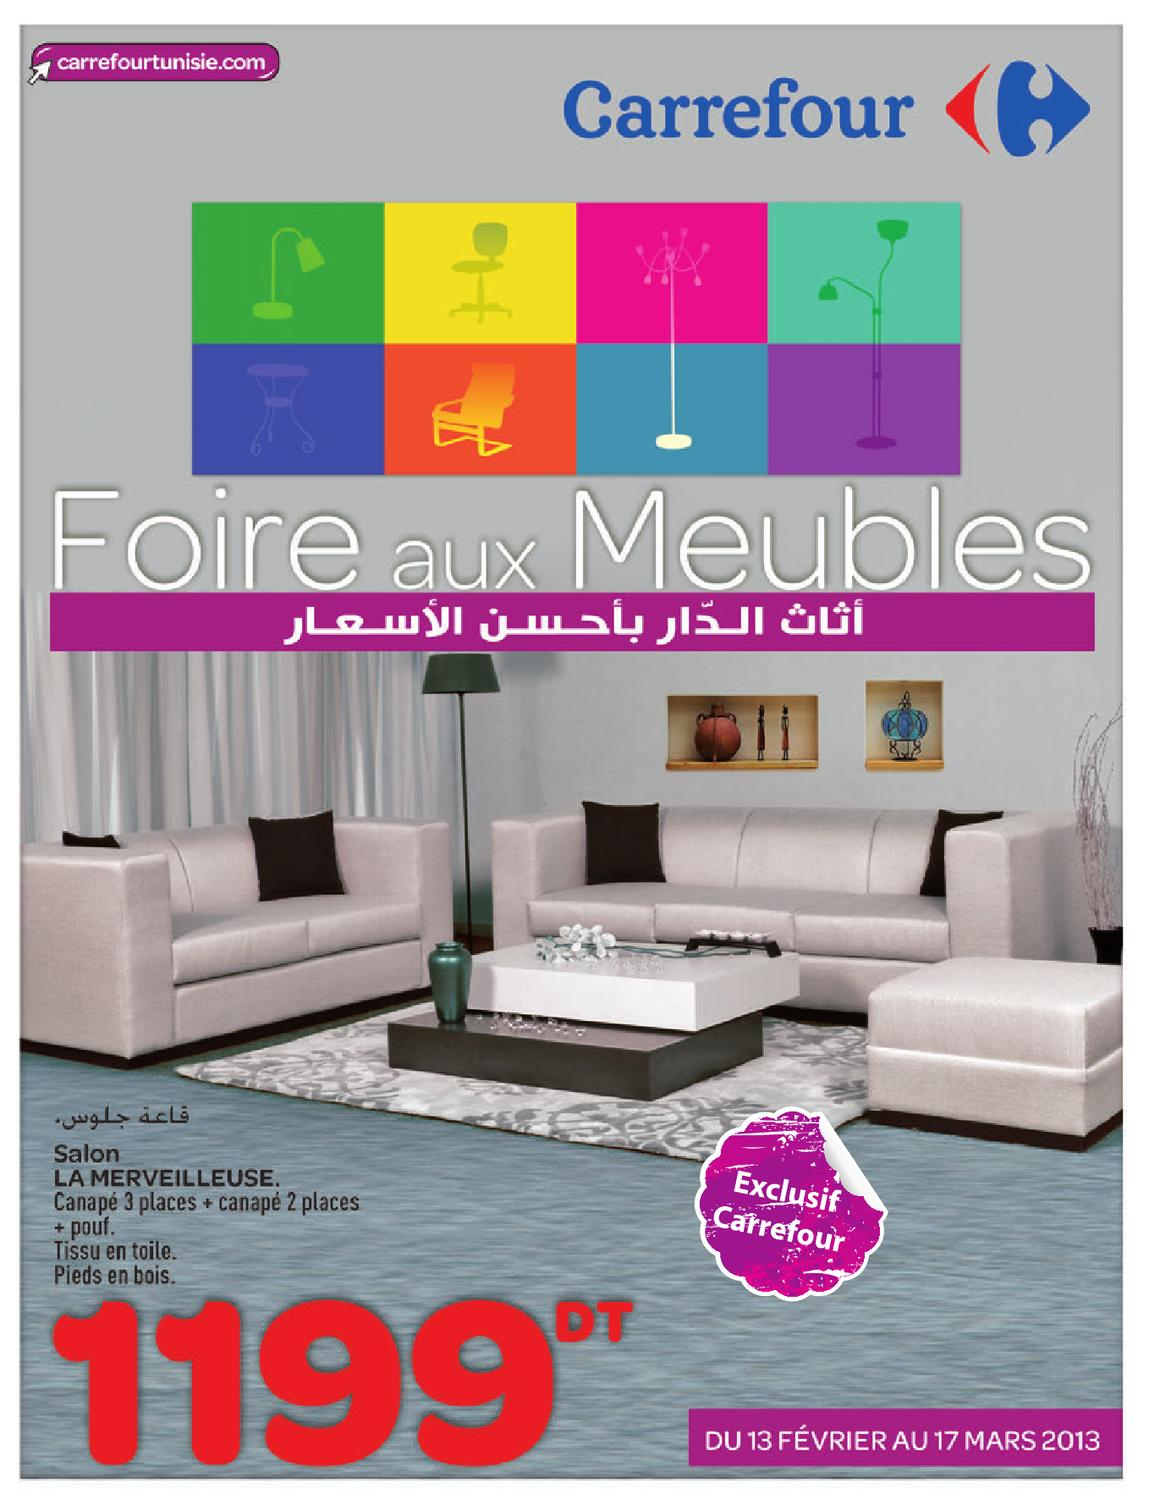 Catalogue carrefour foire aux meulbes by carrefour for Meuble carrefour